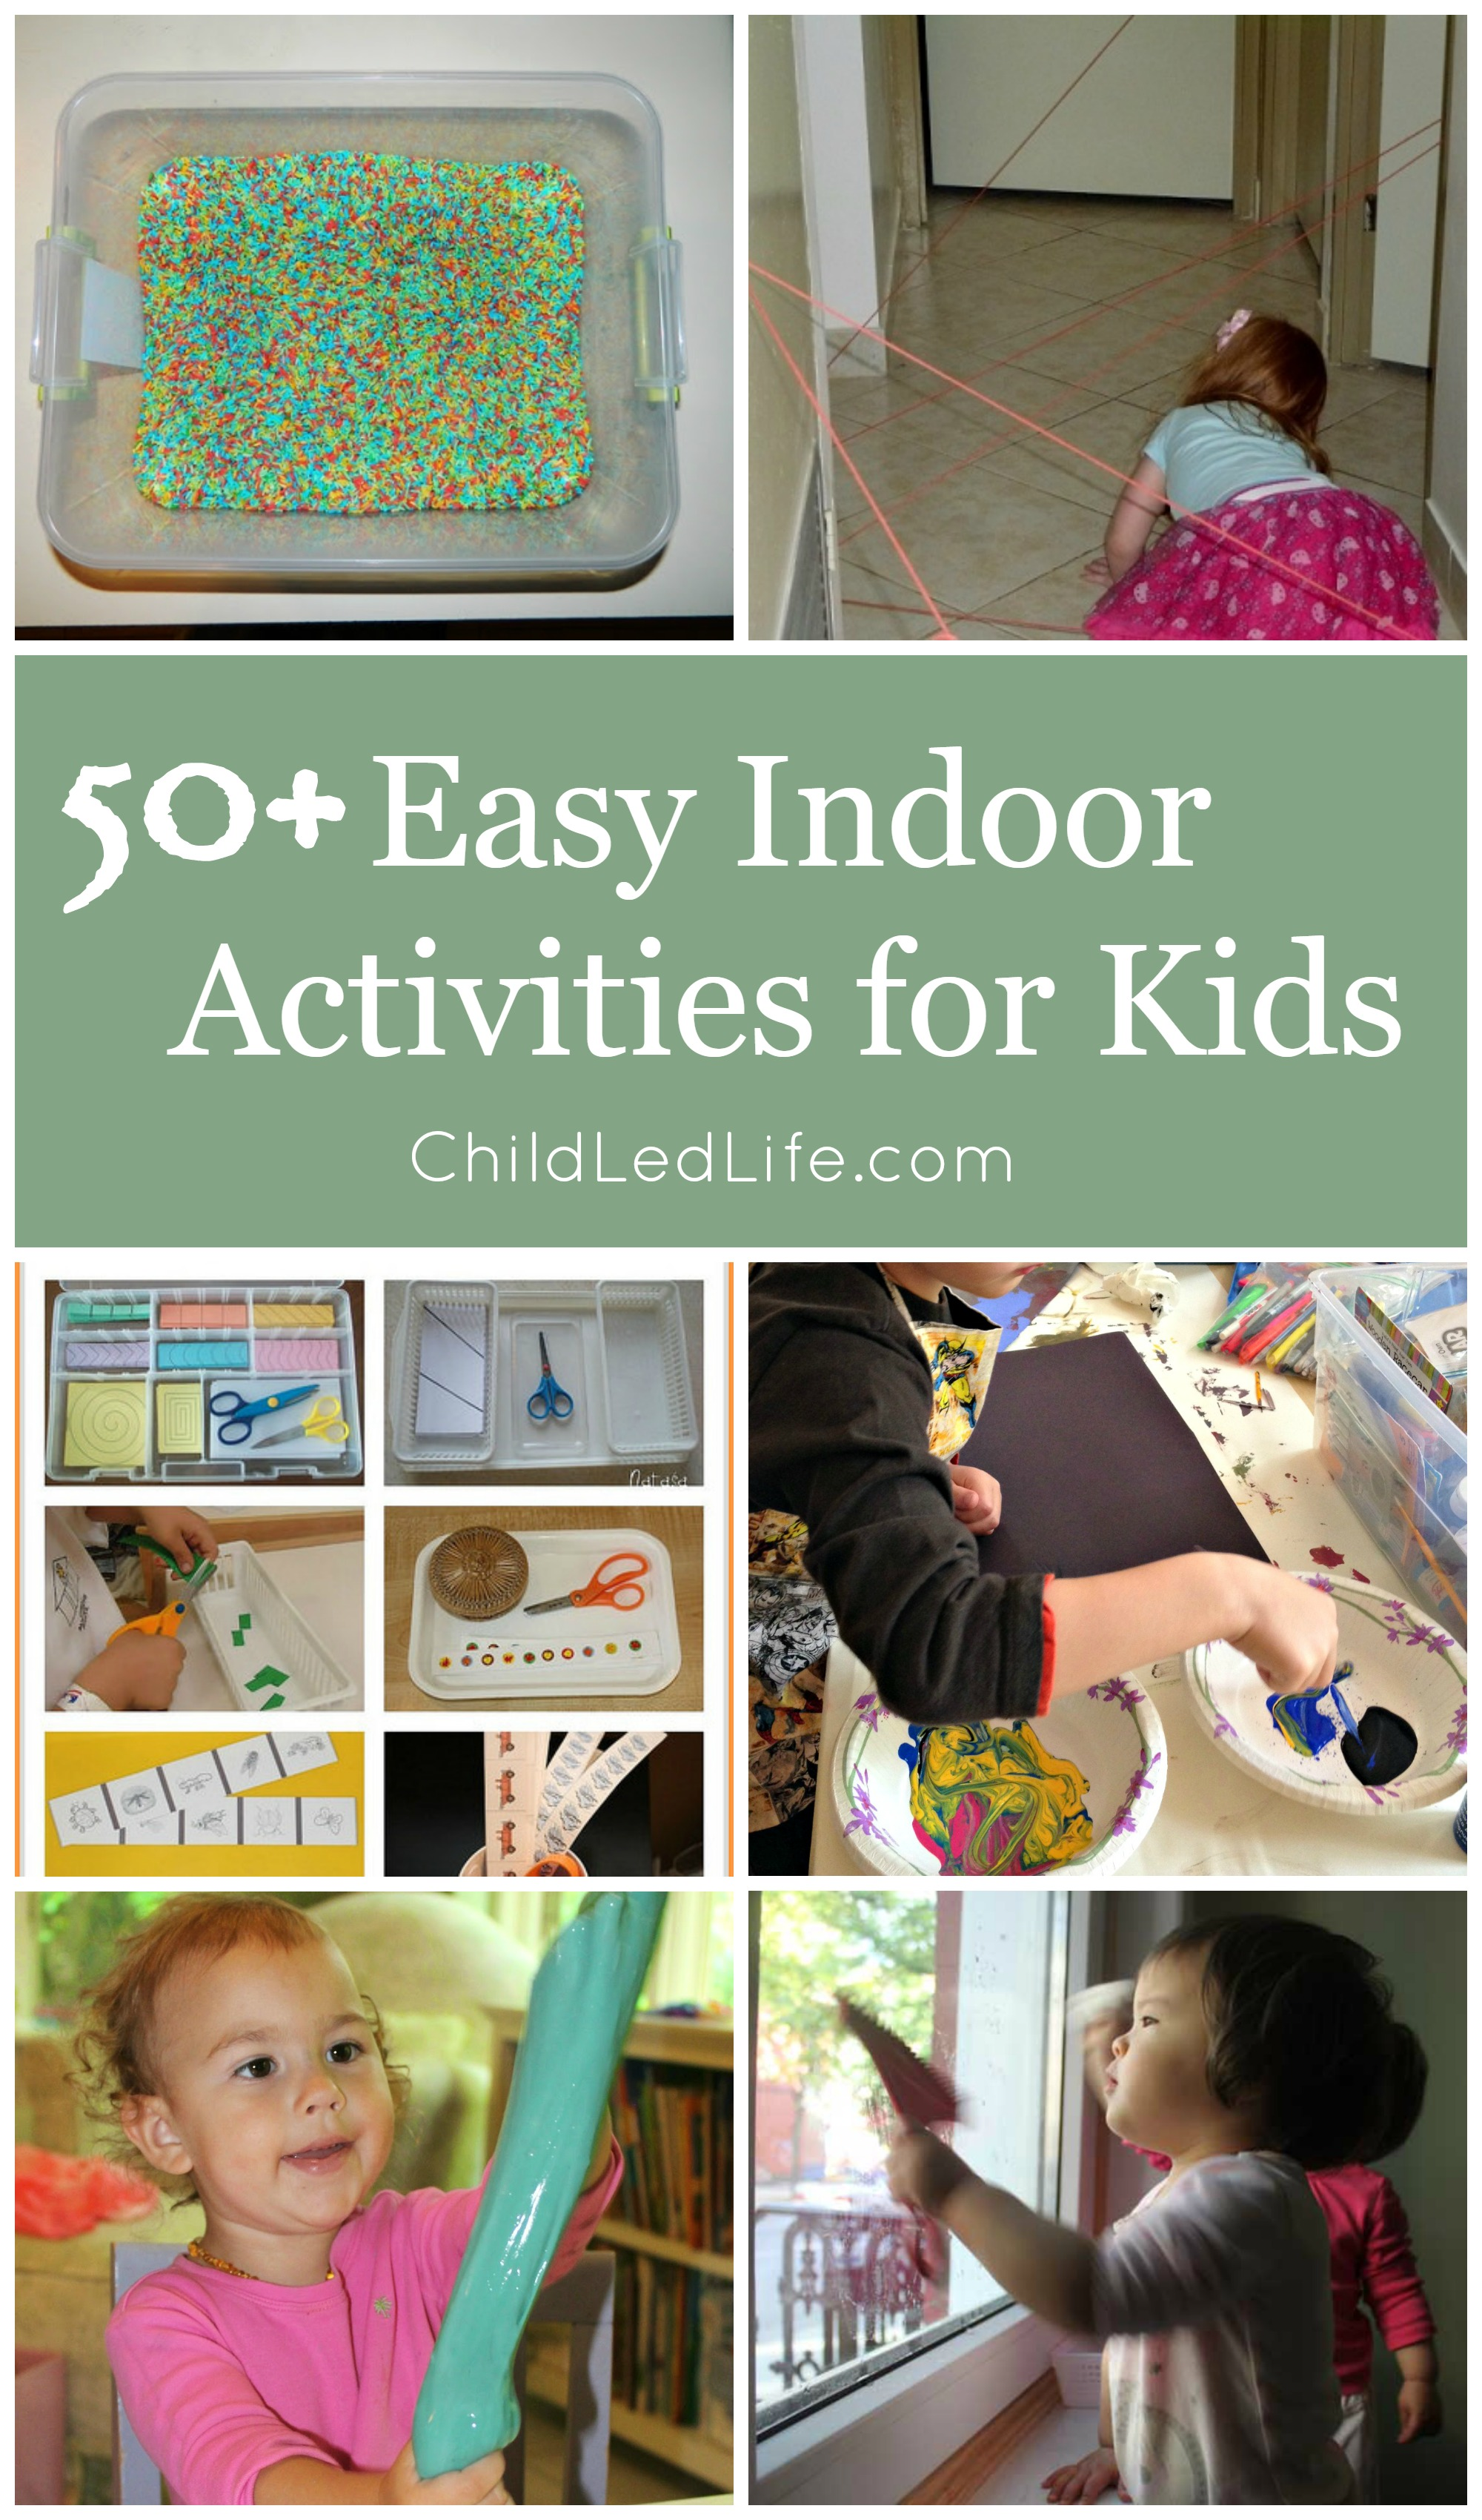 50+ Easy Indoor Activities for Kids